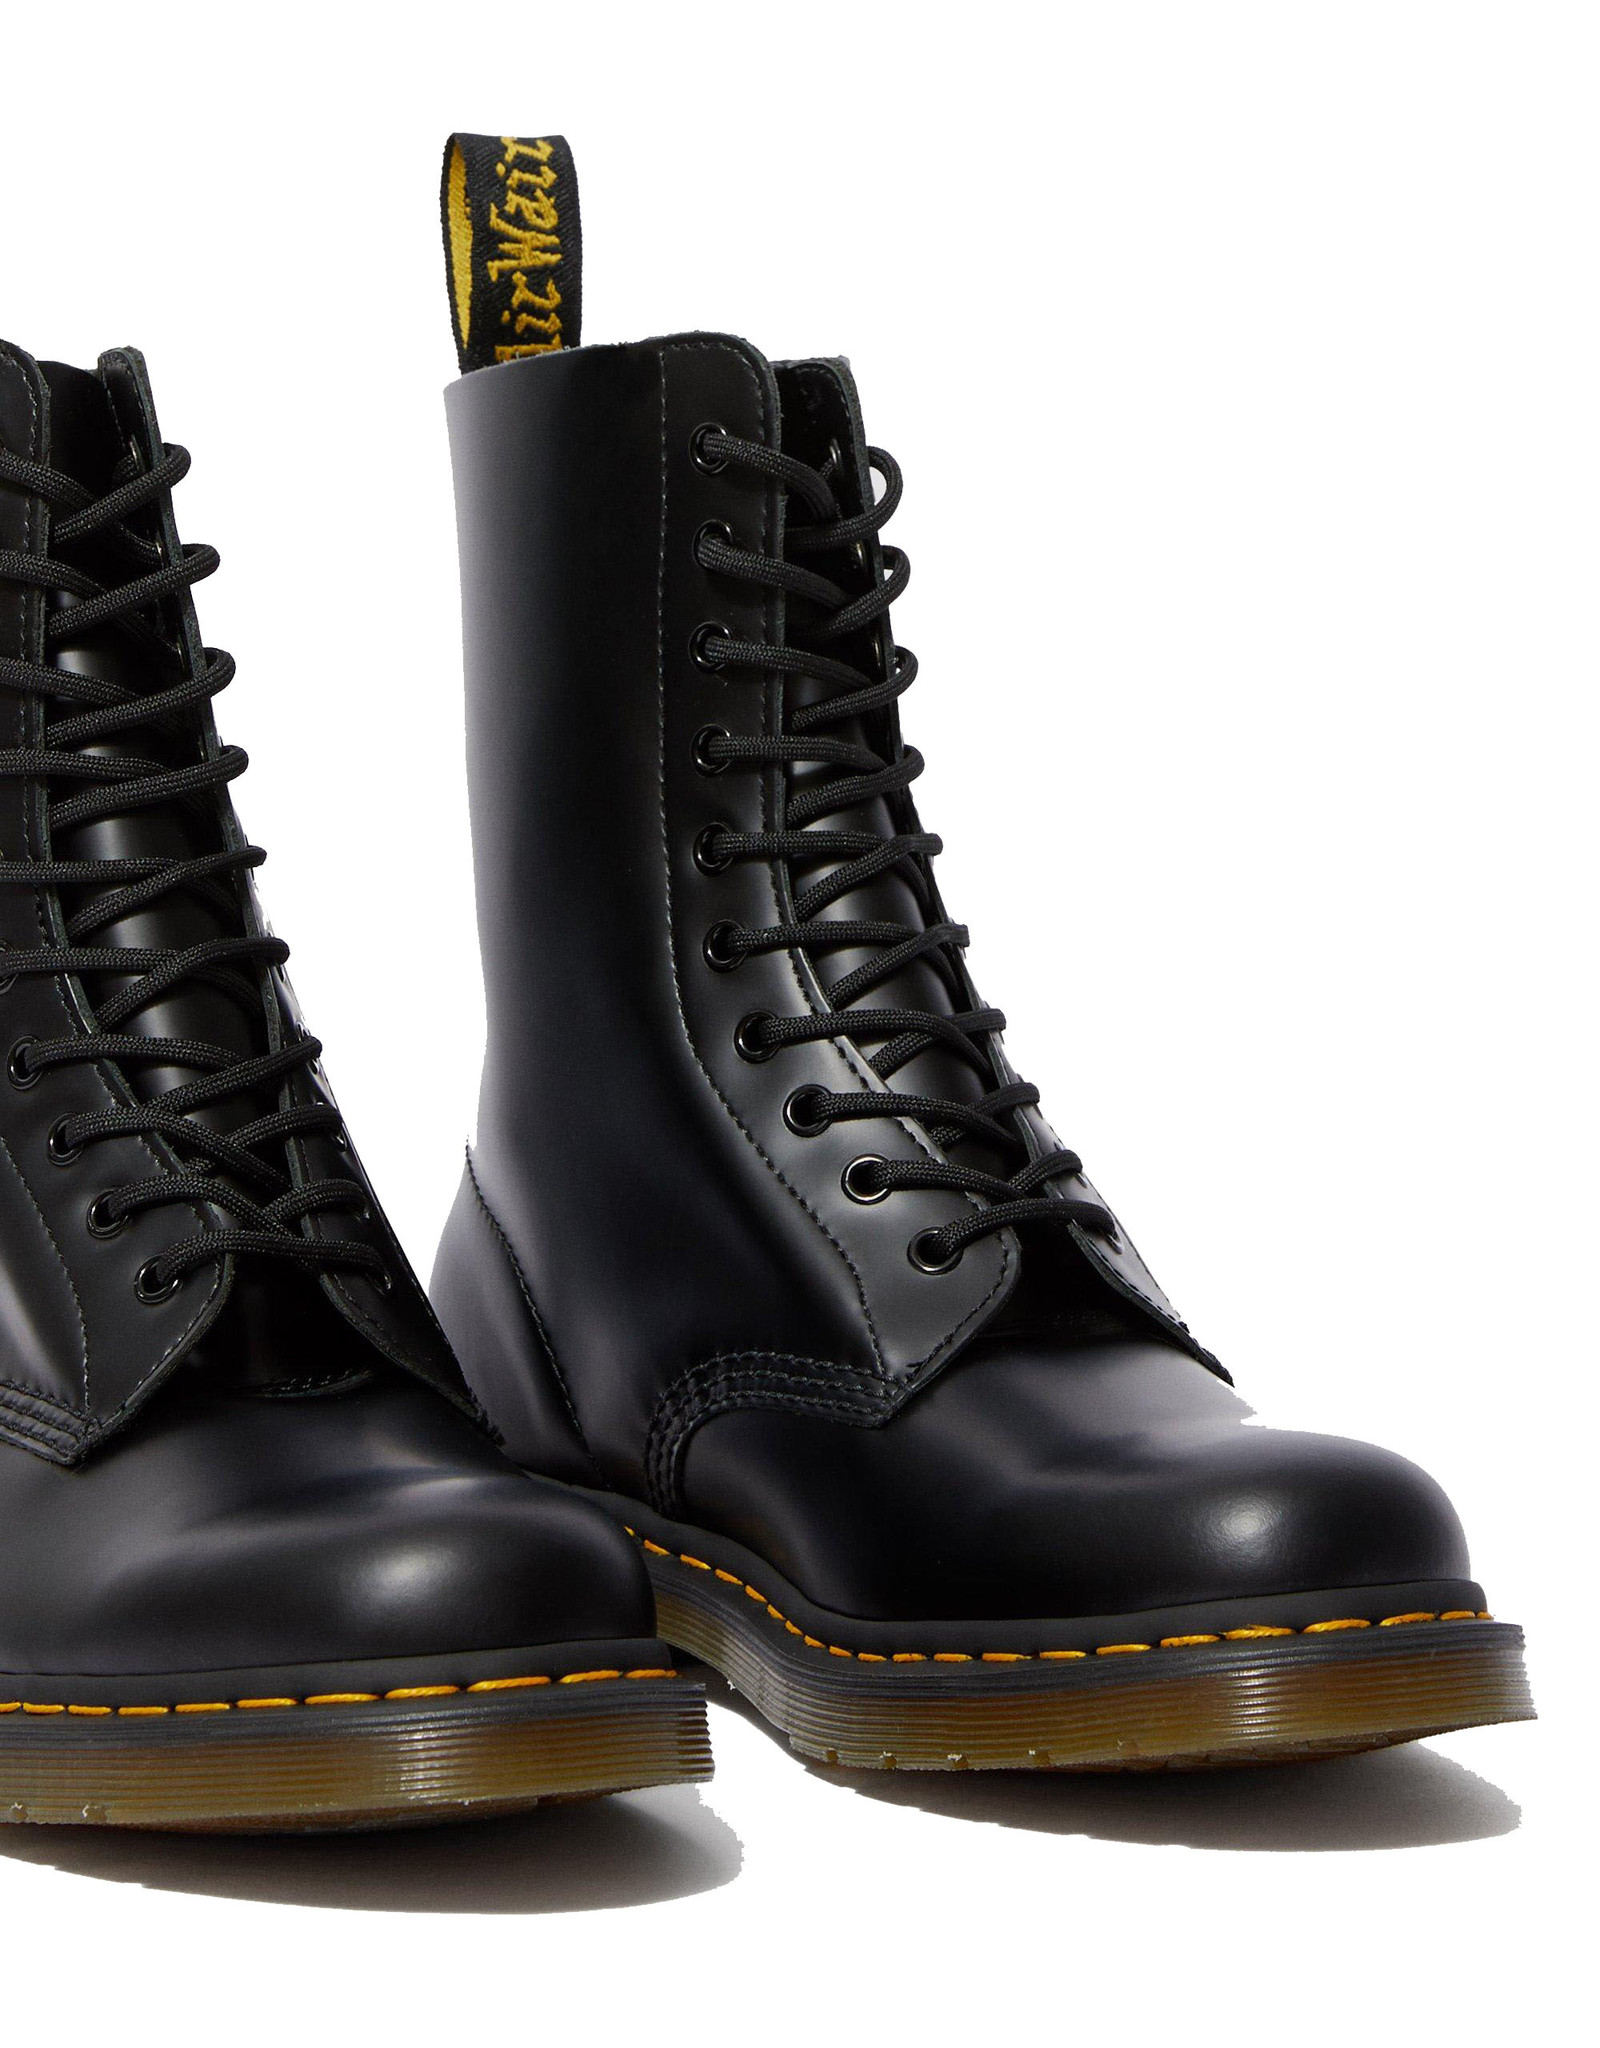 DR. MARTENS 1490 BLACK SMOOTH 1000B-R11857001